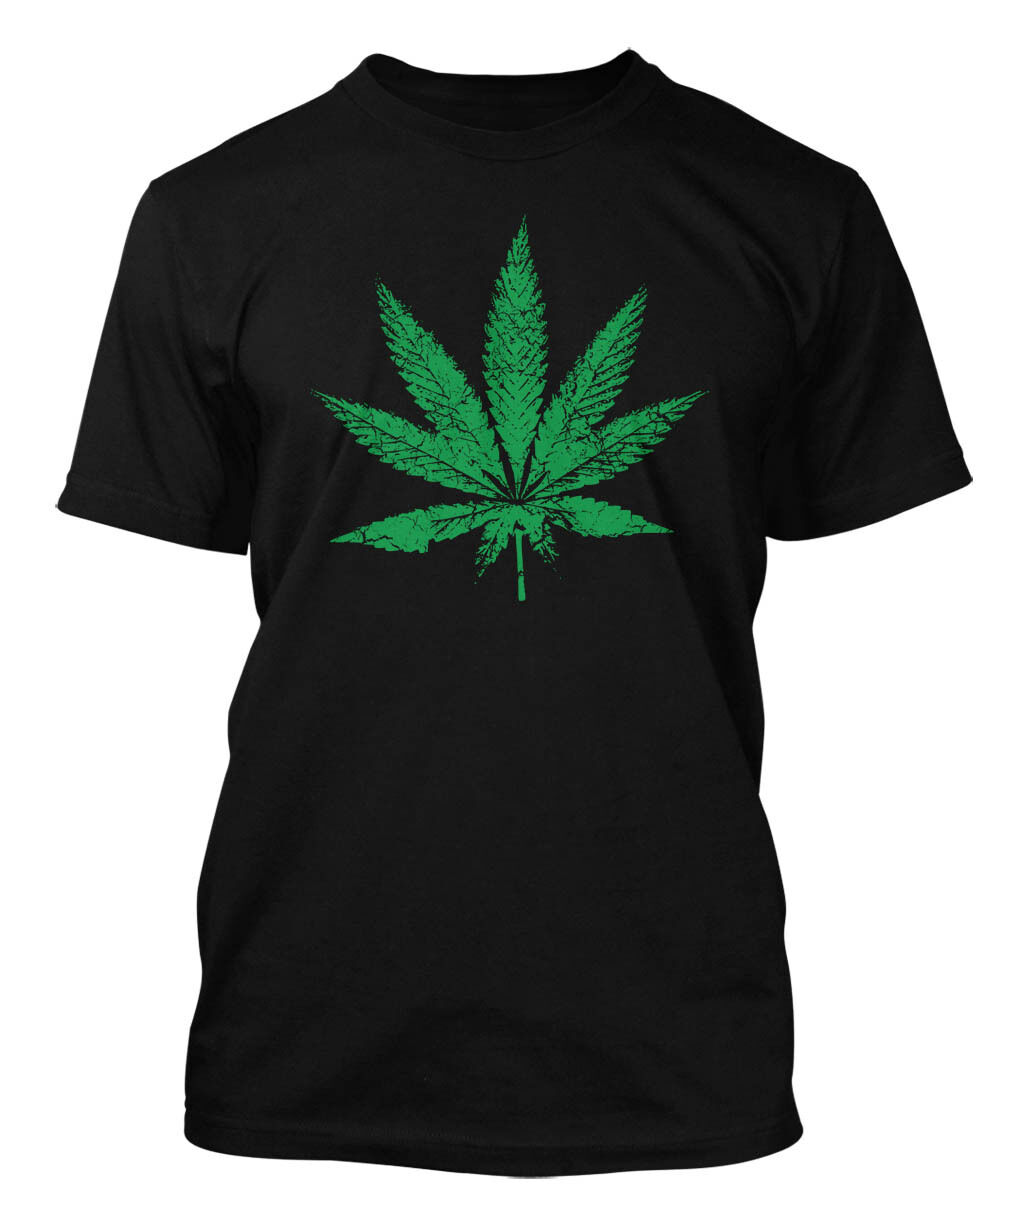 Distressed Marijuana Leaf - Weed Pot Stoner Men's T-shirt 2